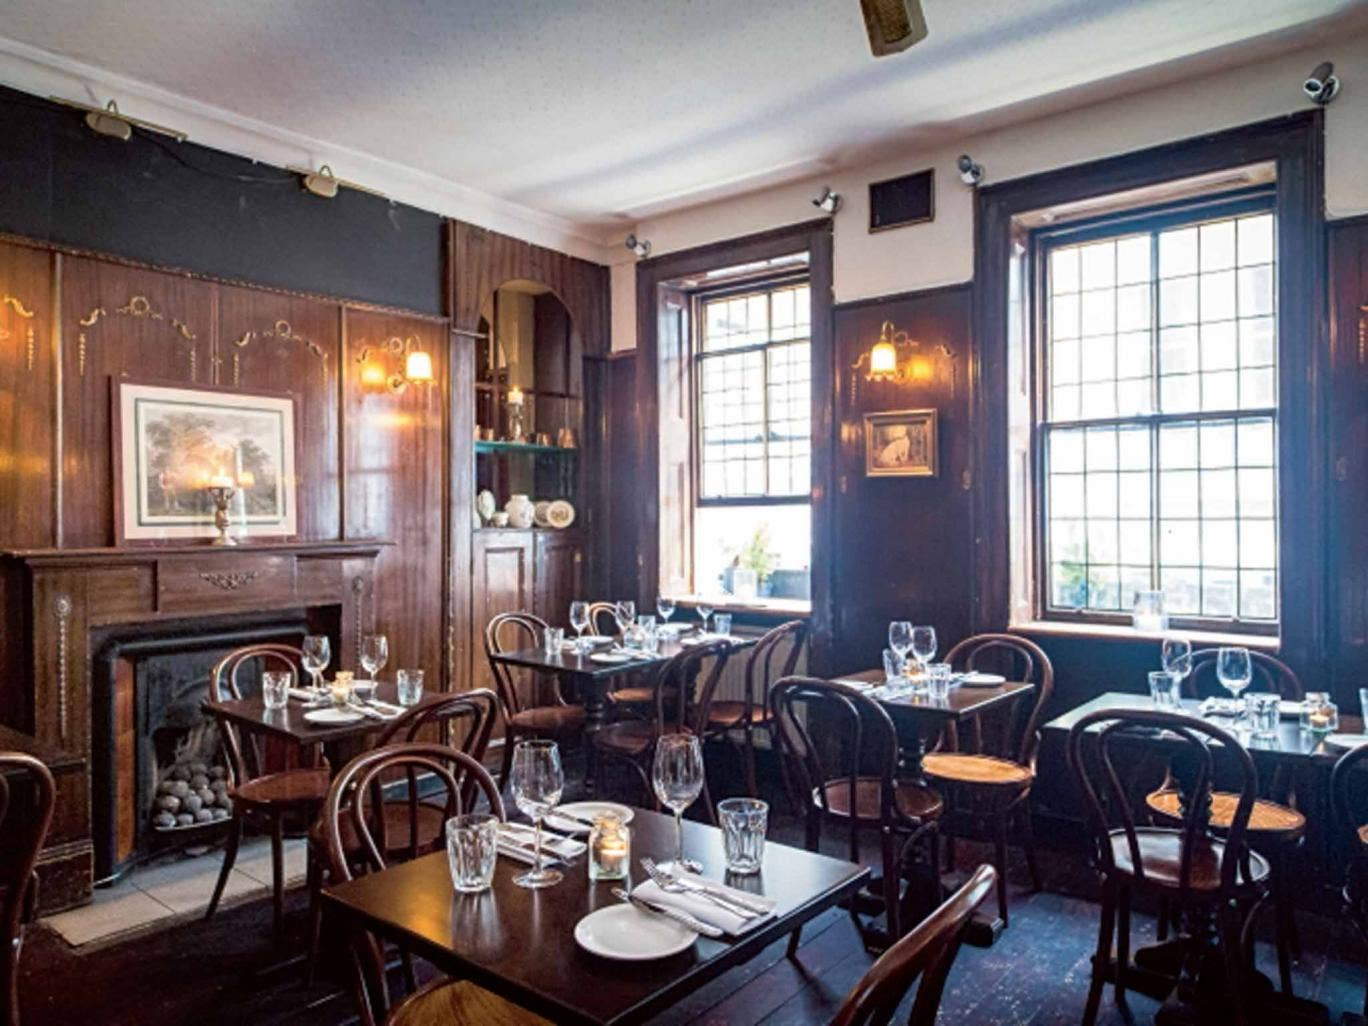 South Barrington Dining Room Project: The Cornwall Project Dining Room, Newman Arms, London: An